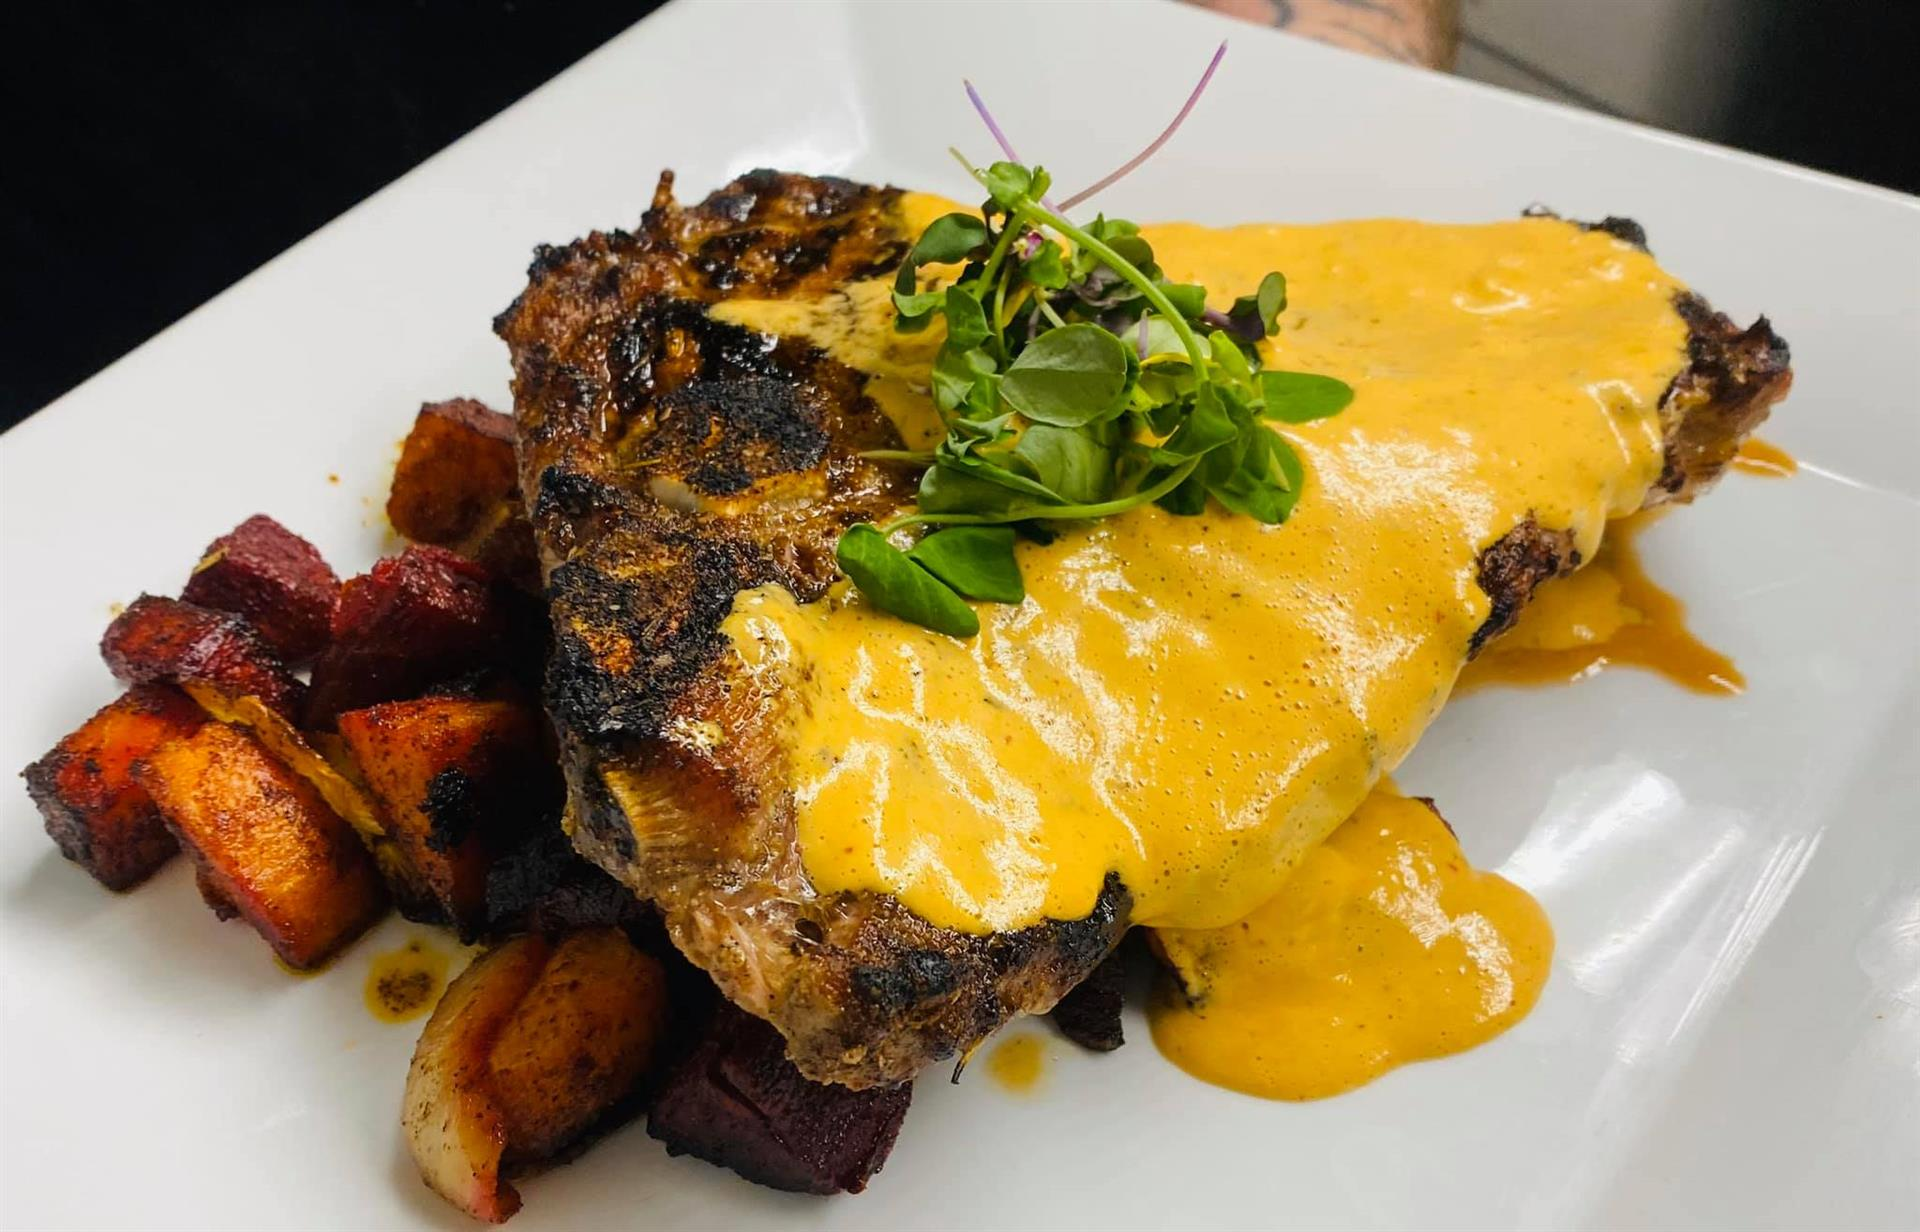 16oz Porterhouse Steak with Chipotle Hollandaise and Cumin Roasted Root Vegetable Medley